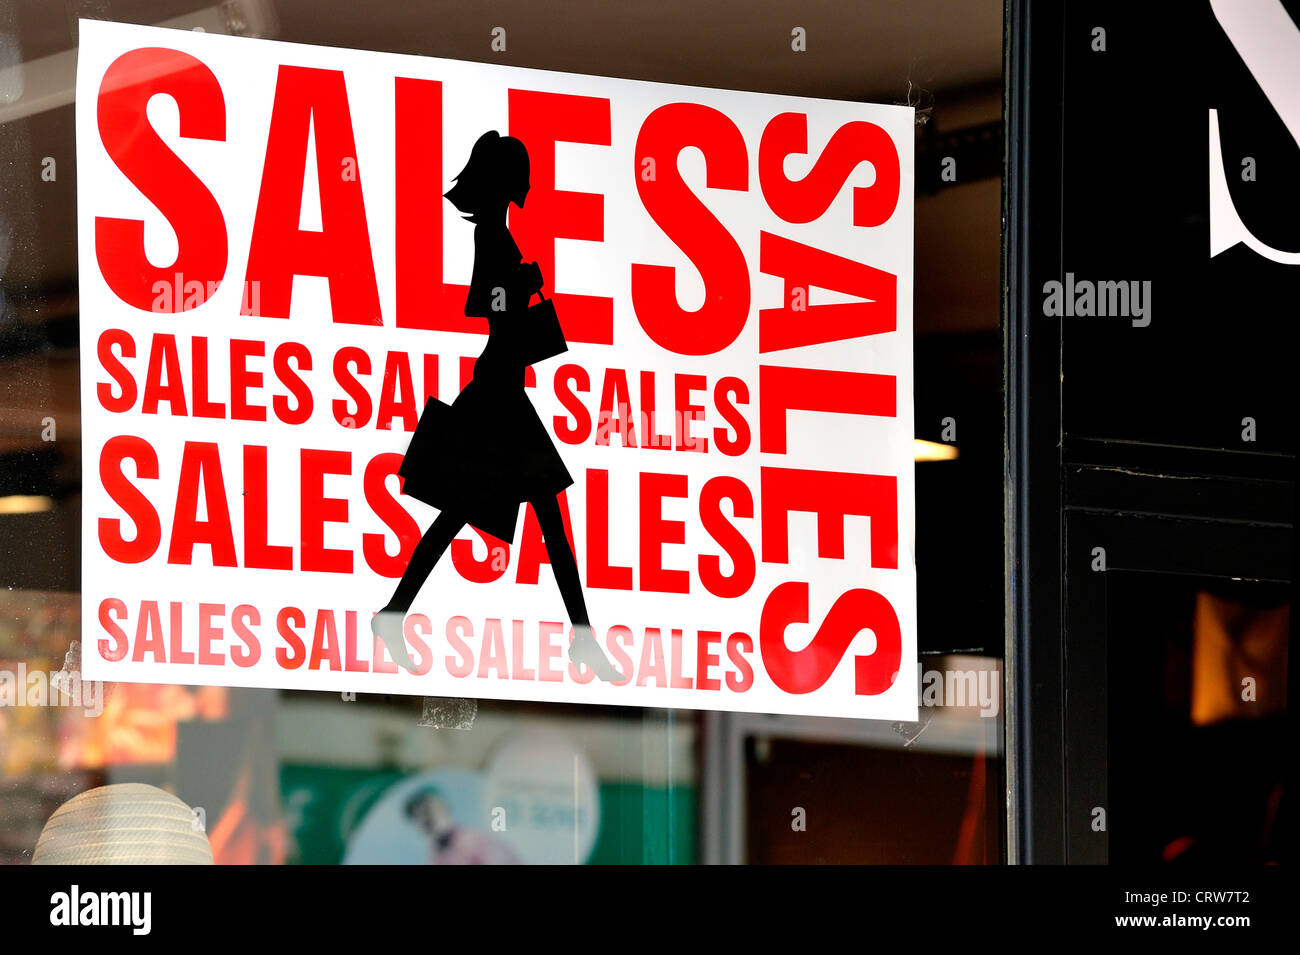 Discount sign showing deductions in shop window of store during the summer sales in shopping street - Stock Image